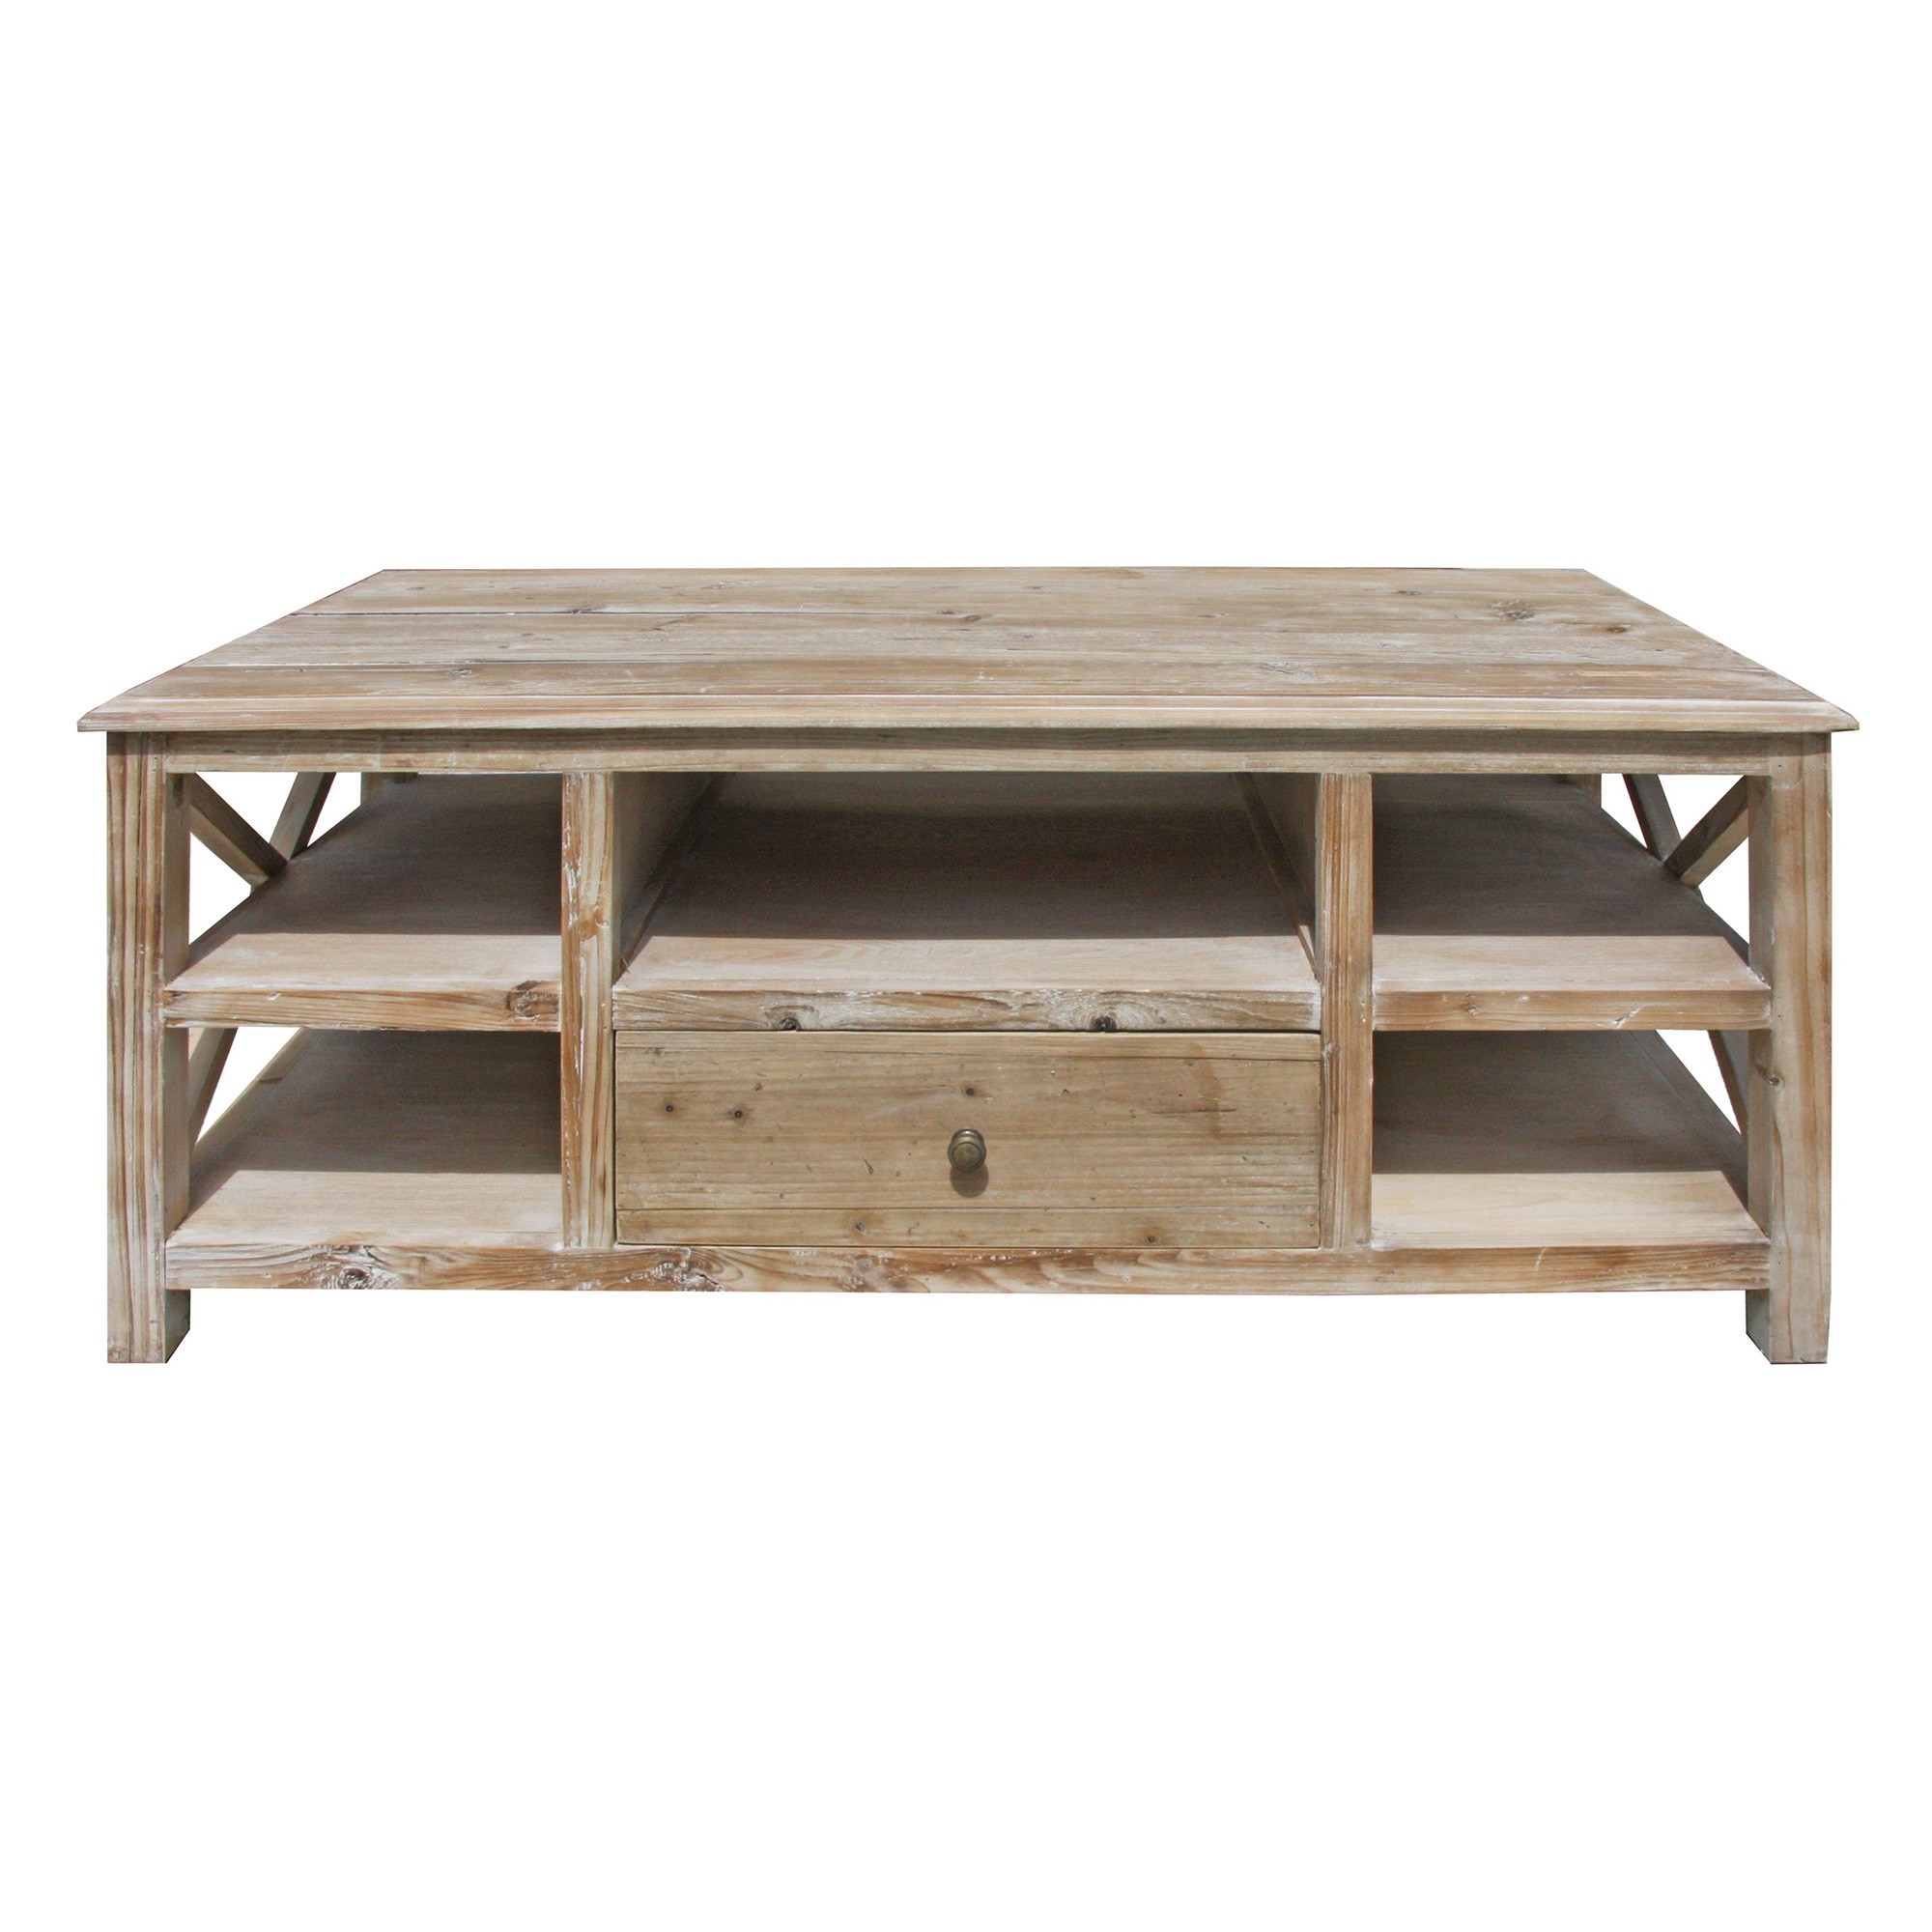 Yukon Recycled Fir Timber Coffee Table, 123cm